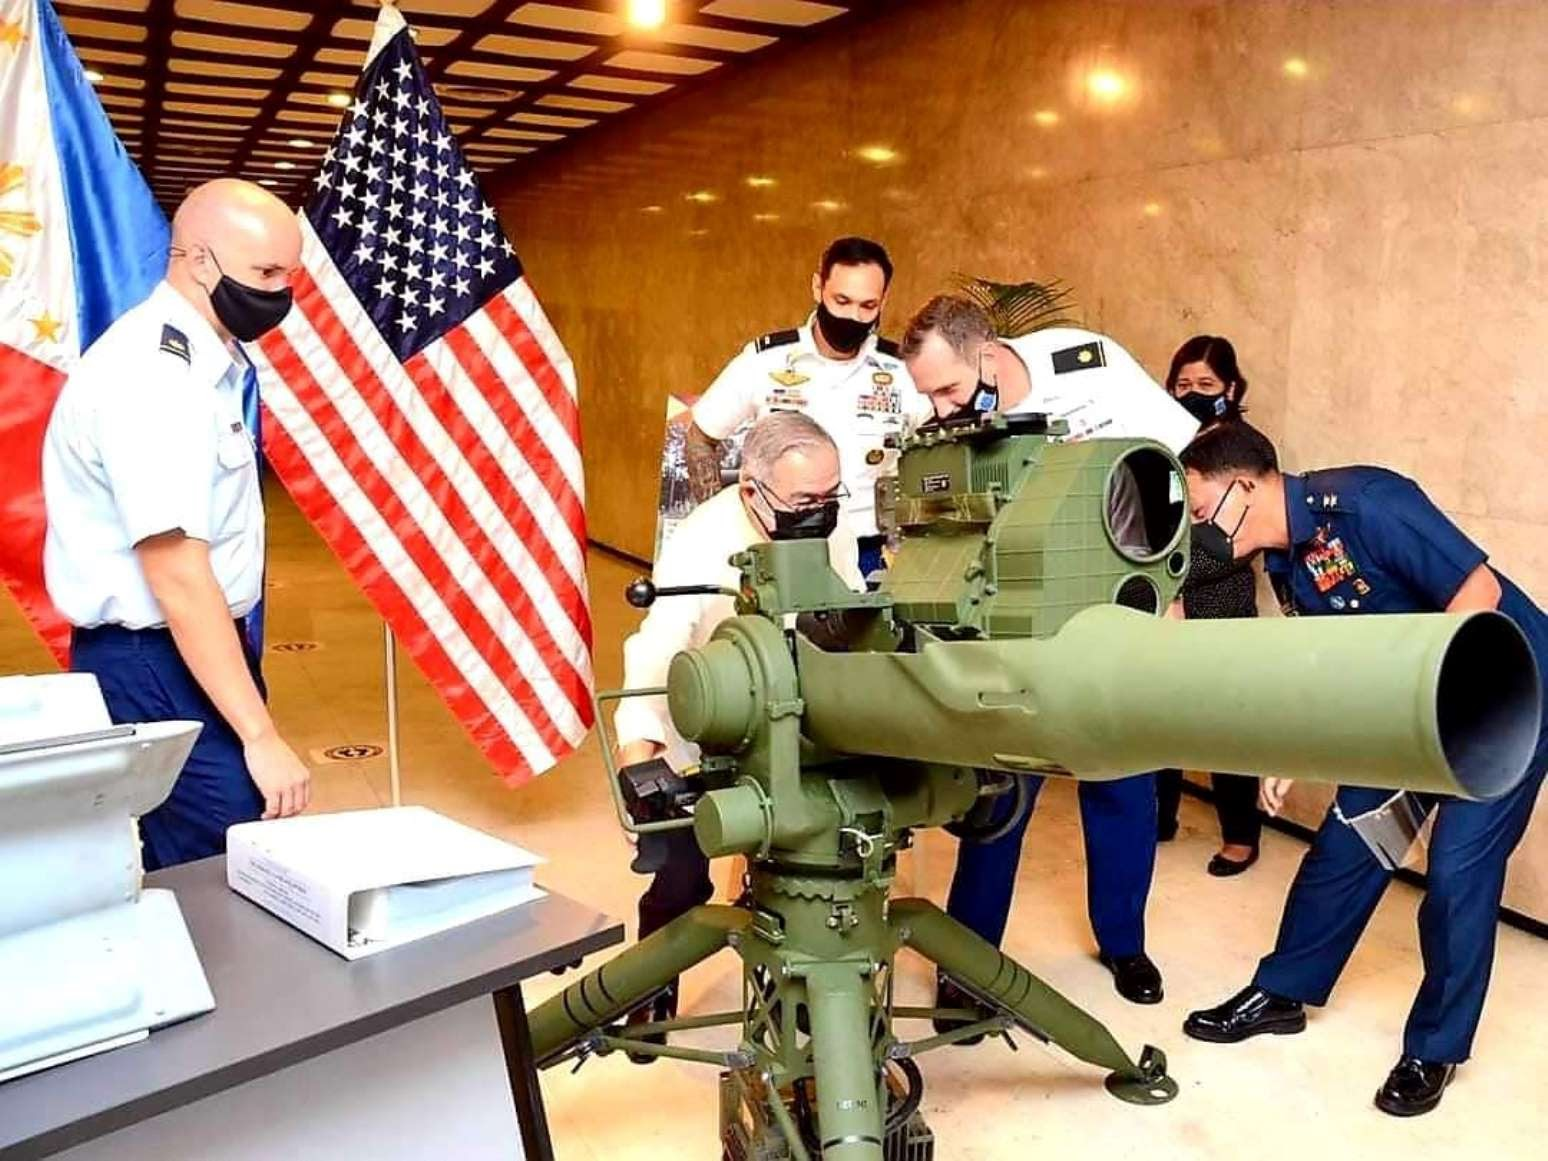 USA provides $18 Million precision-guided missiles, renews pledge to defend Philippines